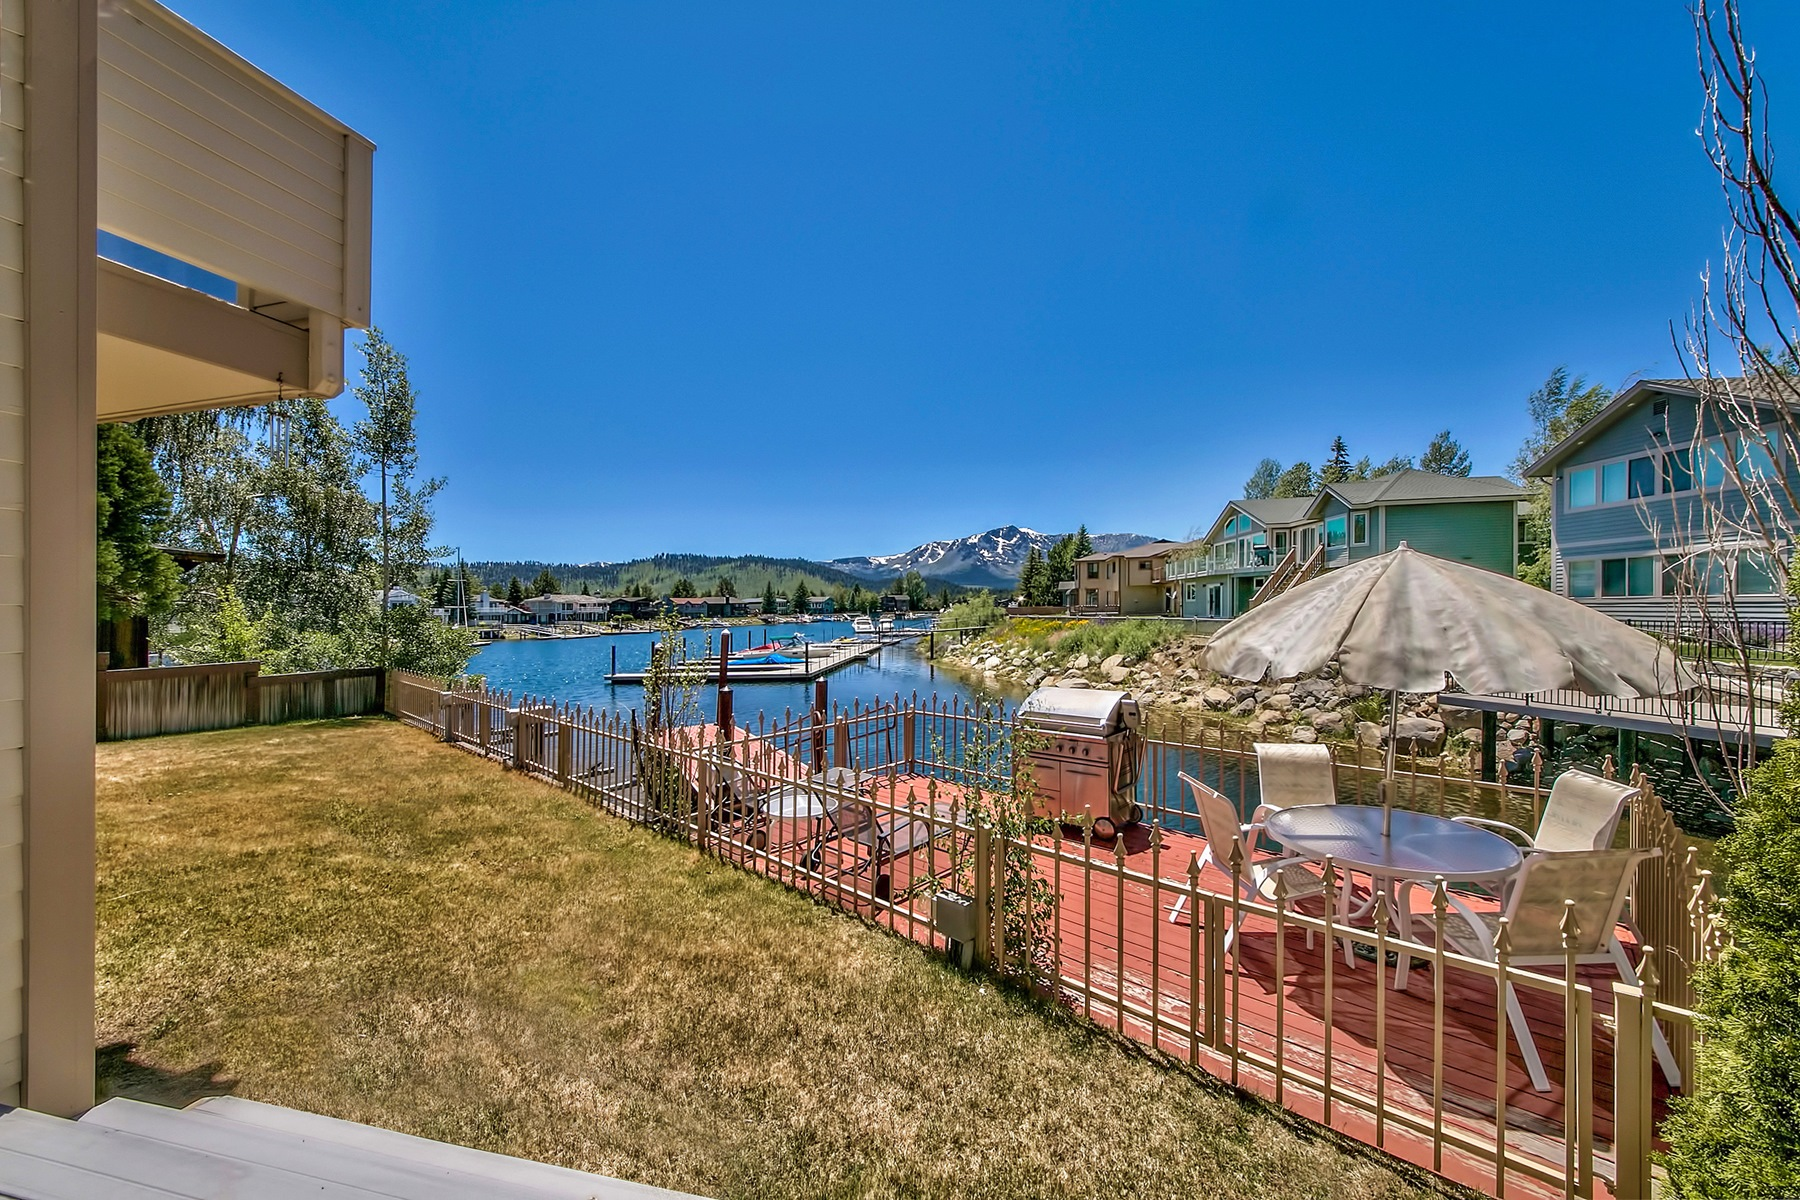 Additional photo for property listing at 358 Beach Lane  South Lake Tahoe, California 96150 Estados Unidos